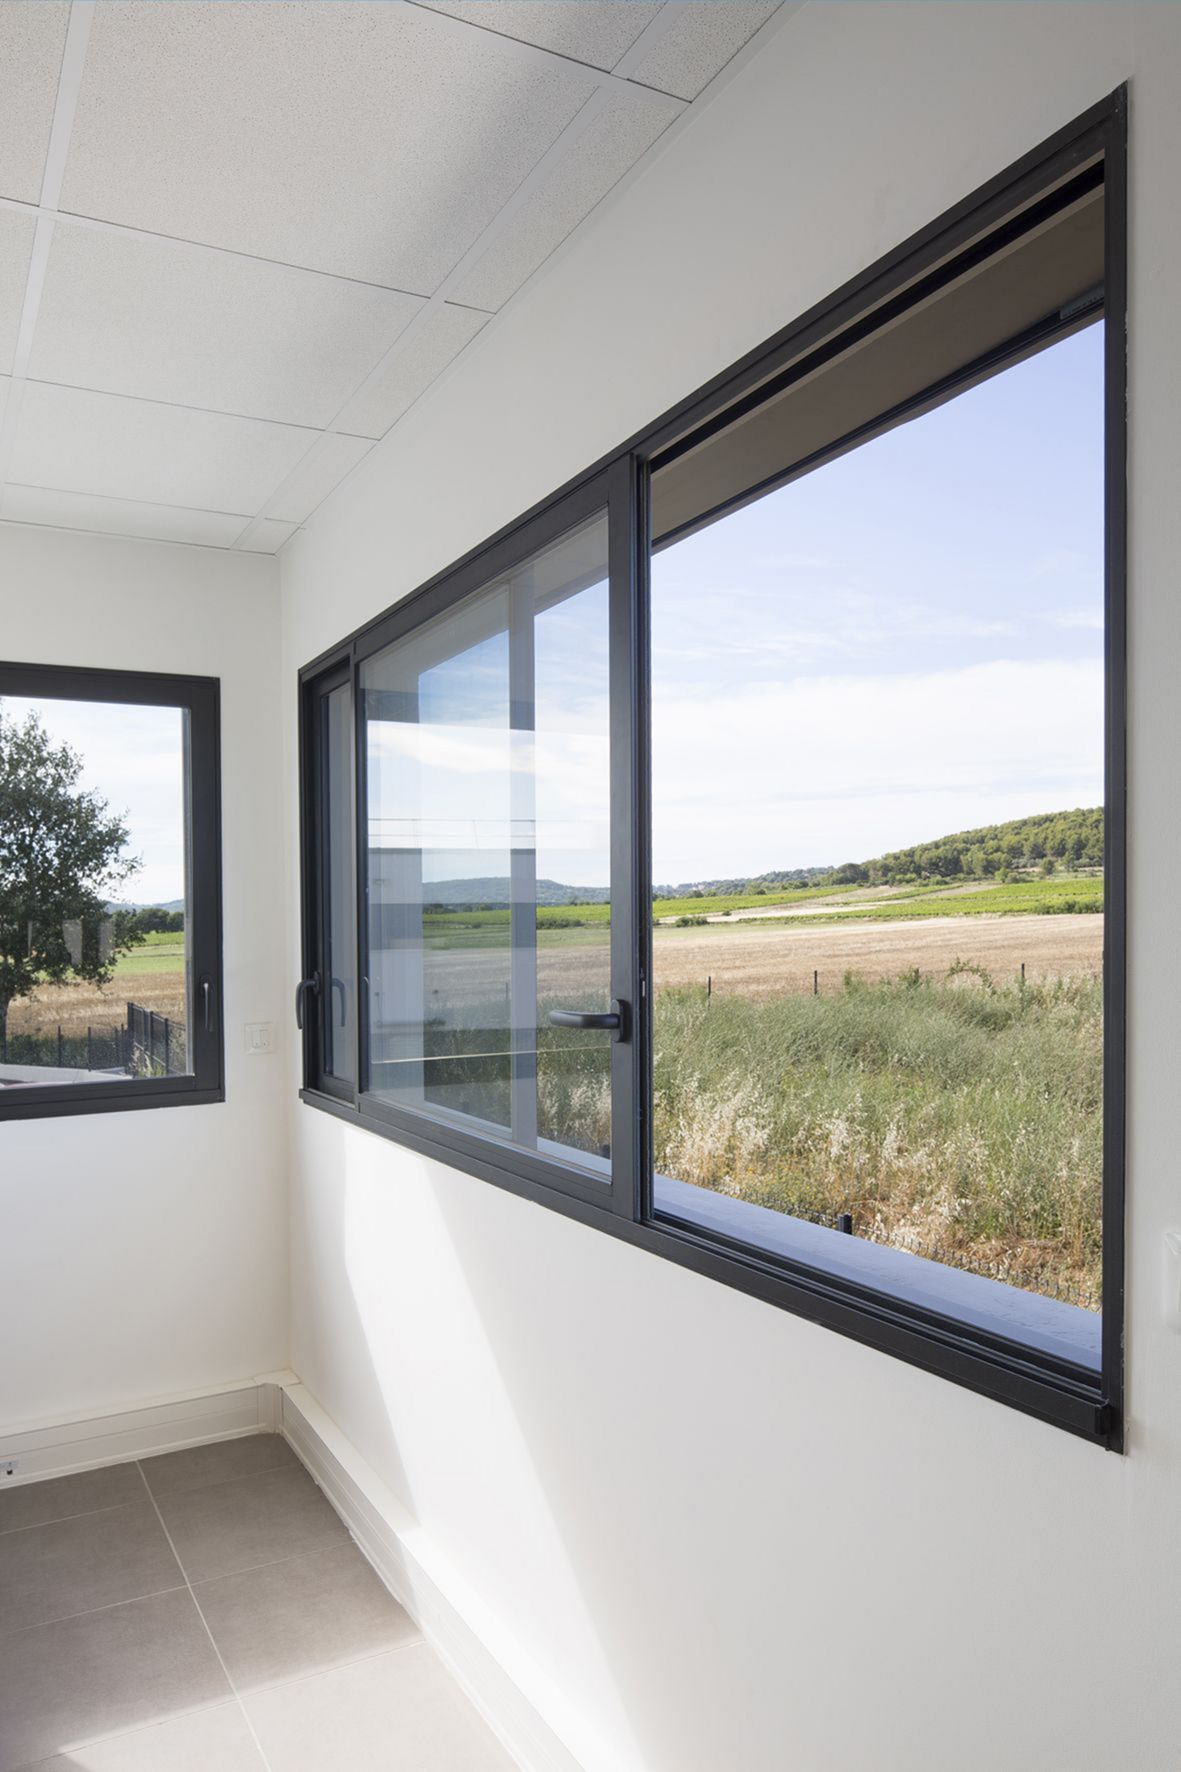 15 Minimalist Window Design Ideas For You To Realize In Your Home